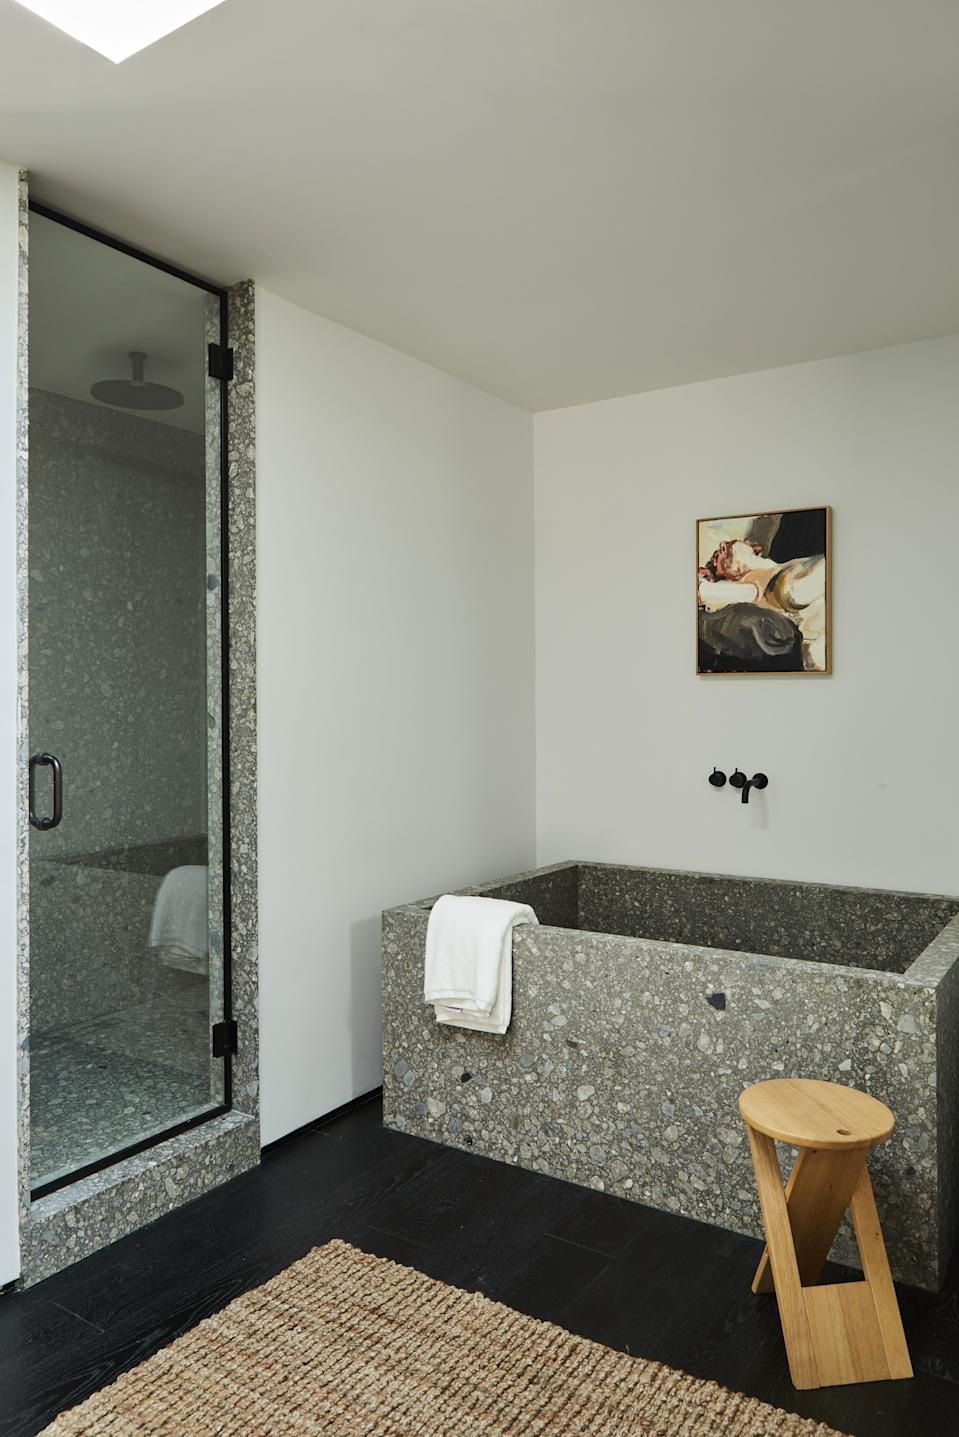 An oil painting by Robert Malherbe from BDDW adorns the wall above the custom tub by OSKLO in extra honed ceppo di gre stone from Stoneland, with Vola tub fittings from EuroConcepts. The Roger Tallon folding stool is from 1stdibs.